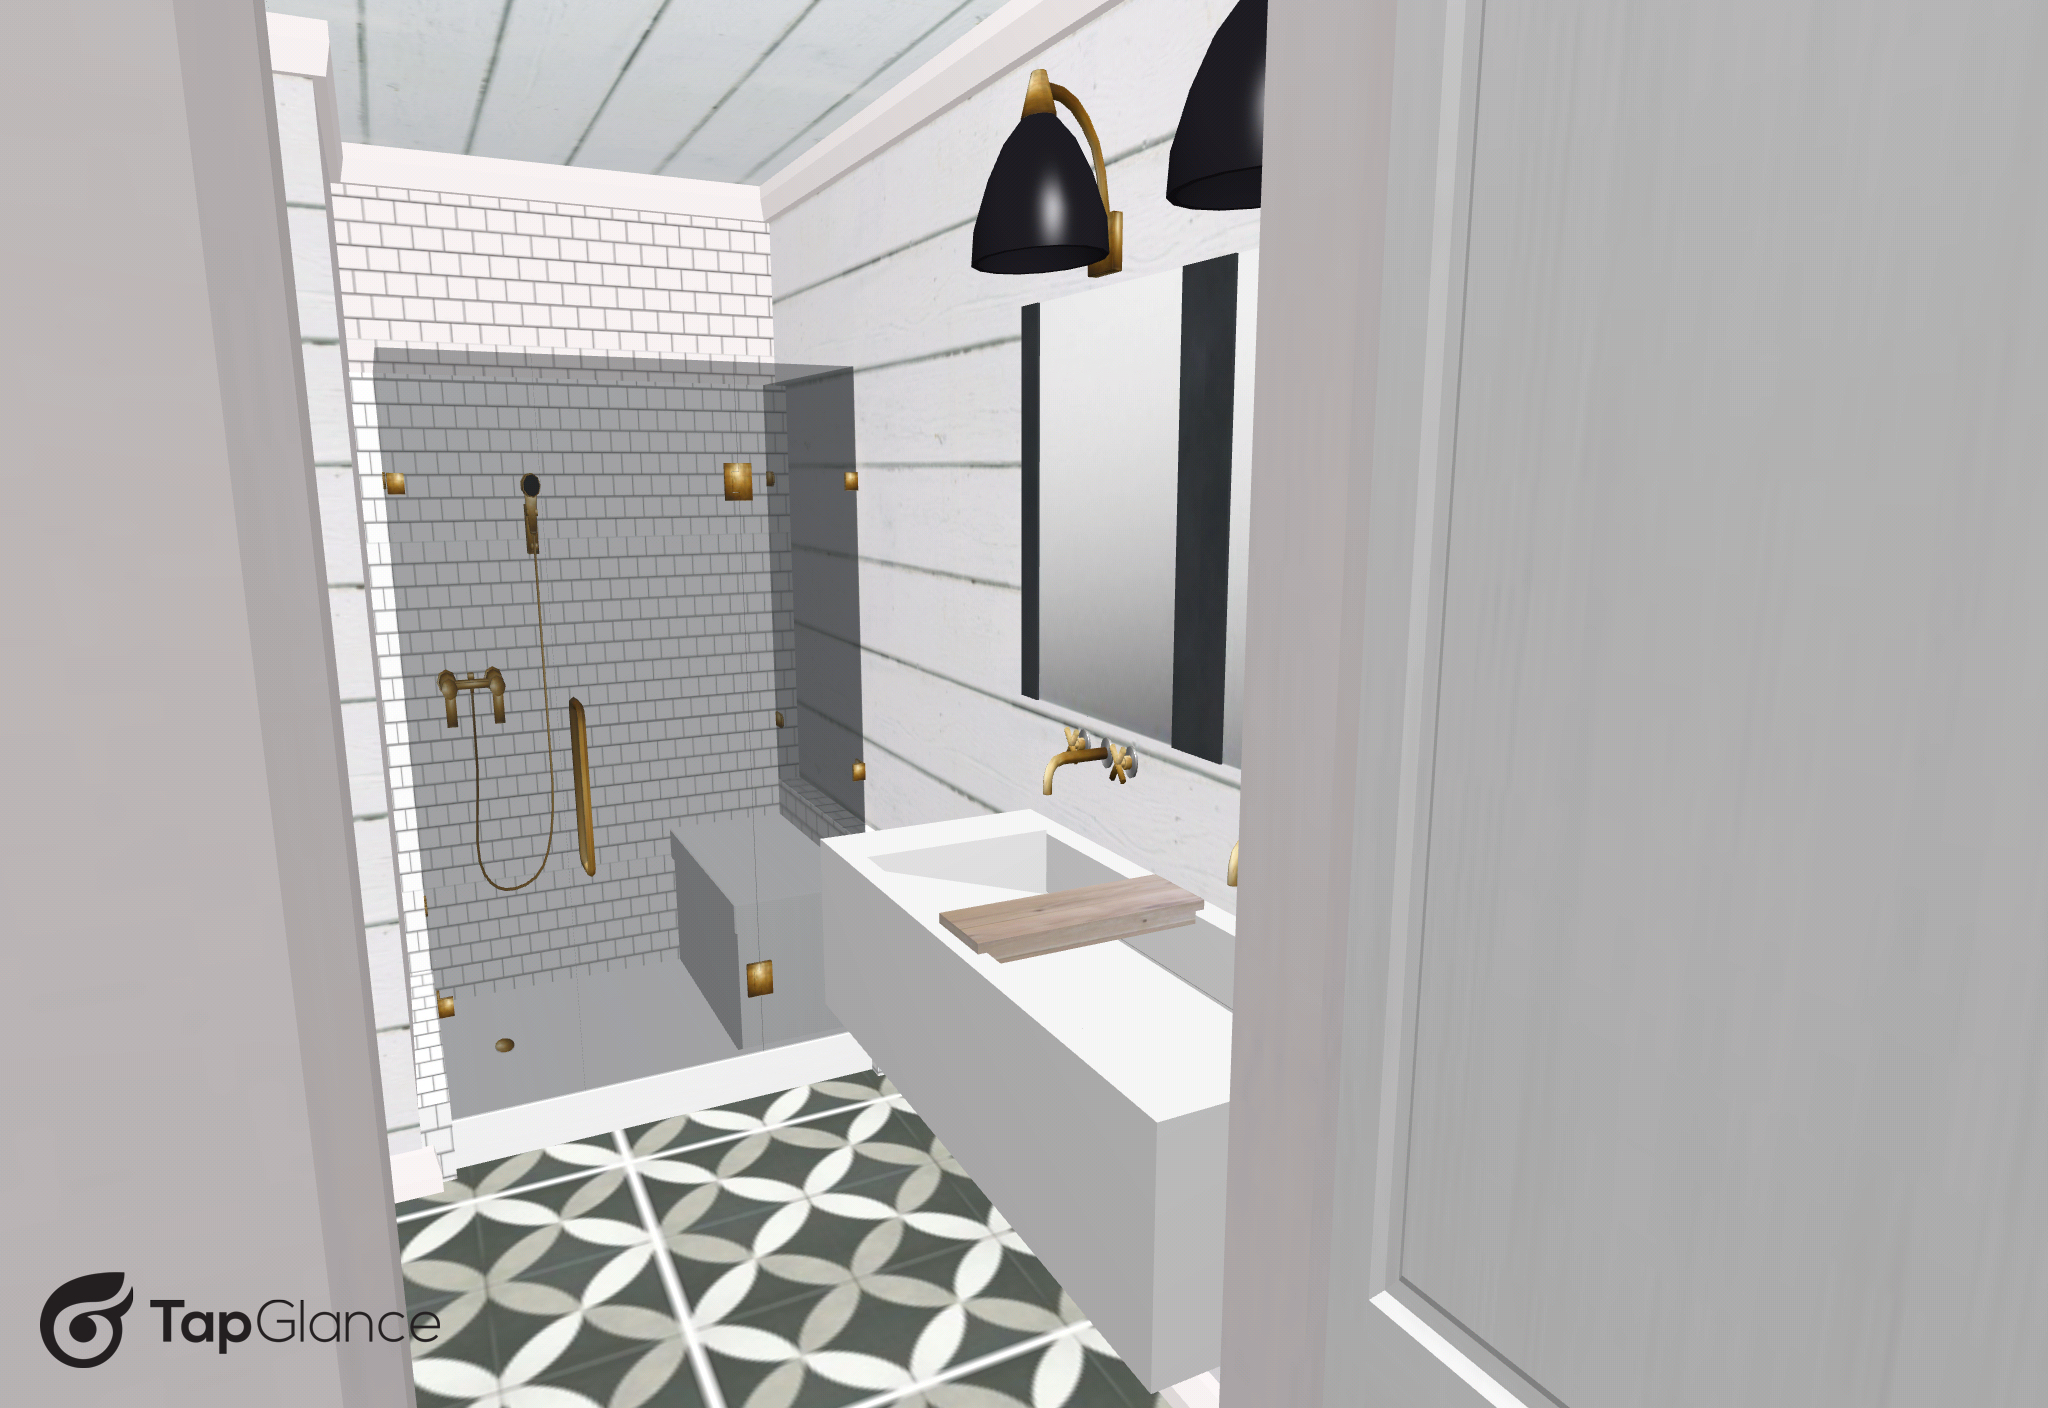 This walk-in shower, once it's completed, will have shiplap on one wall, and subway tile on the other two along with a built-in bench.